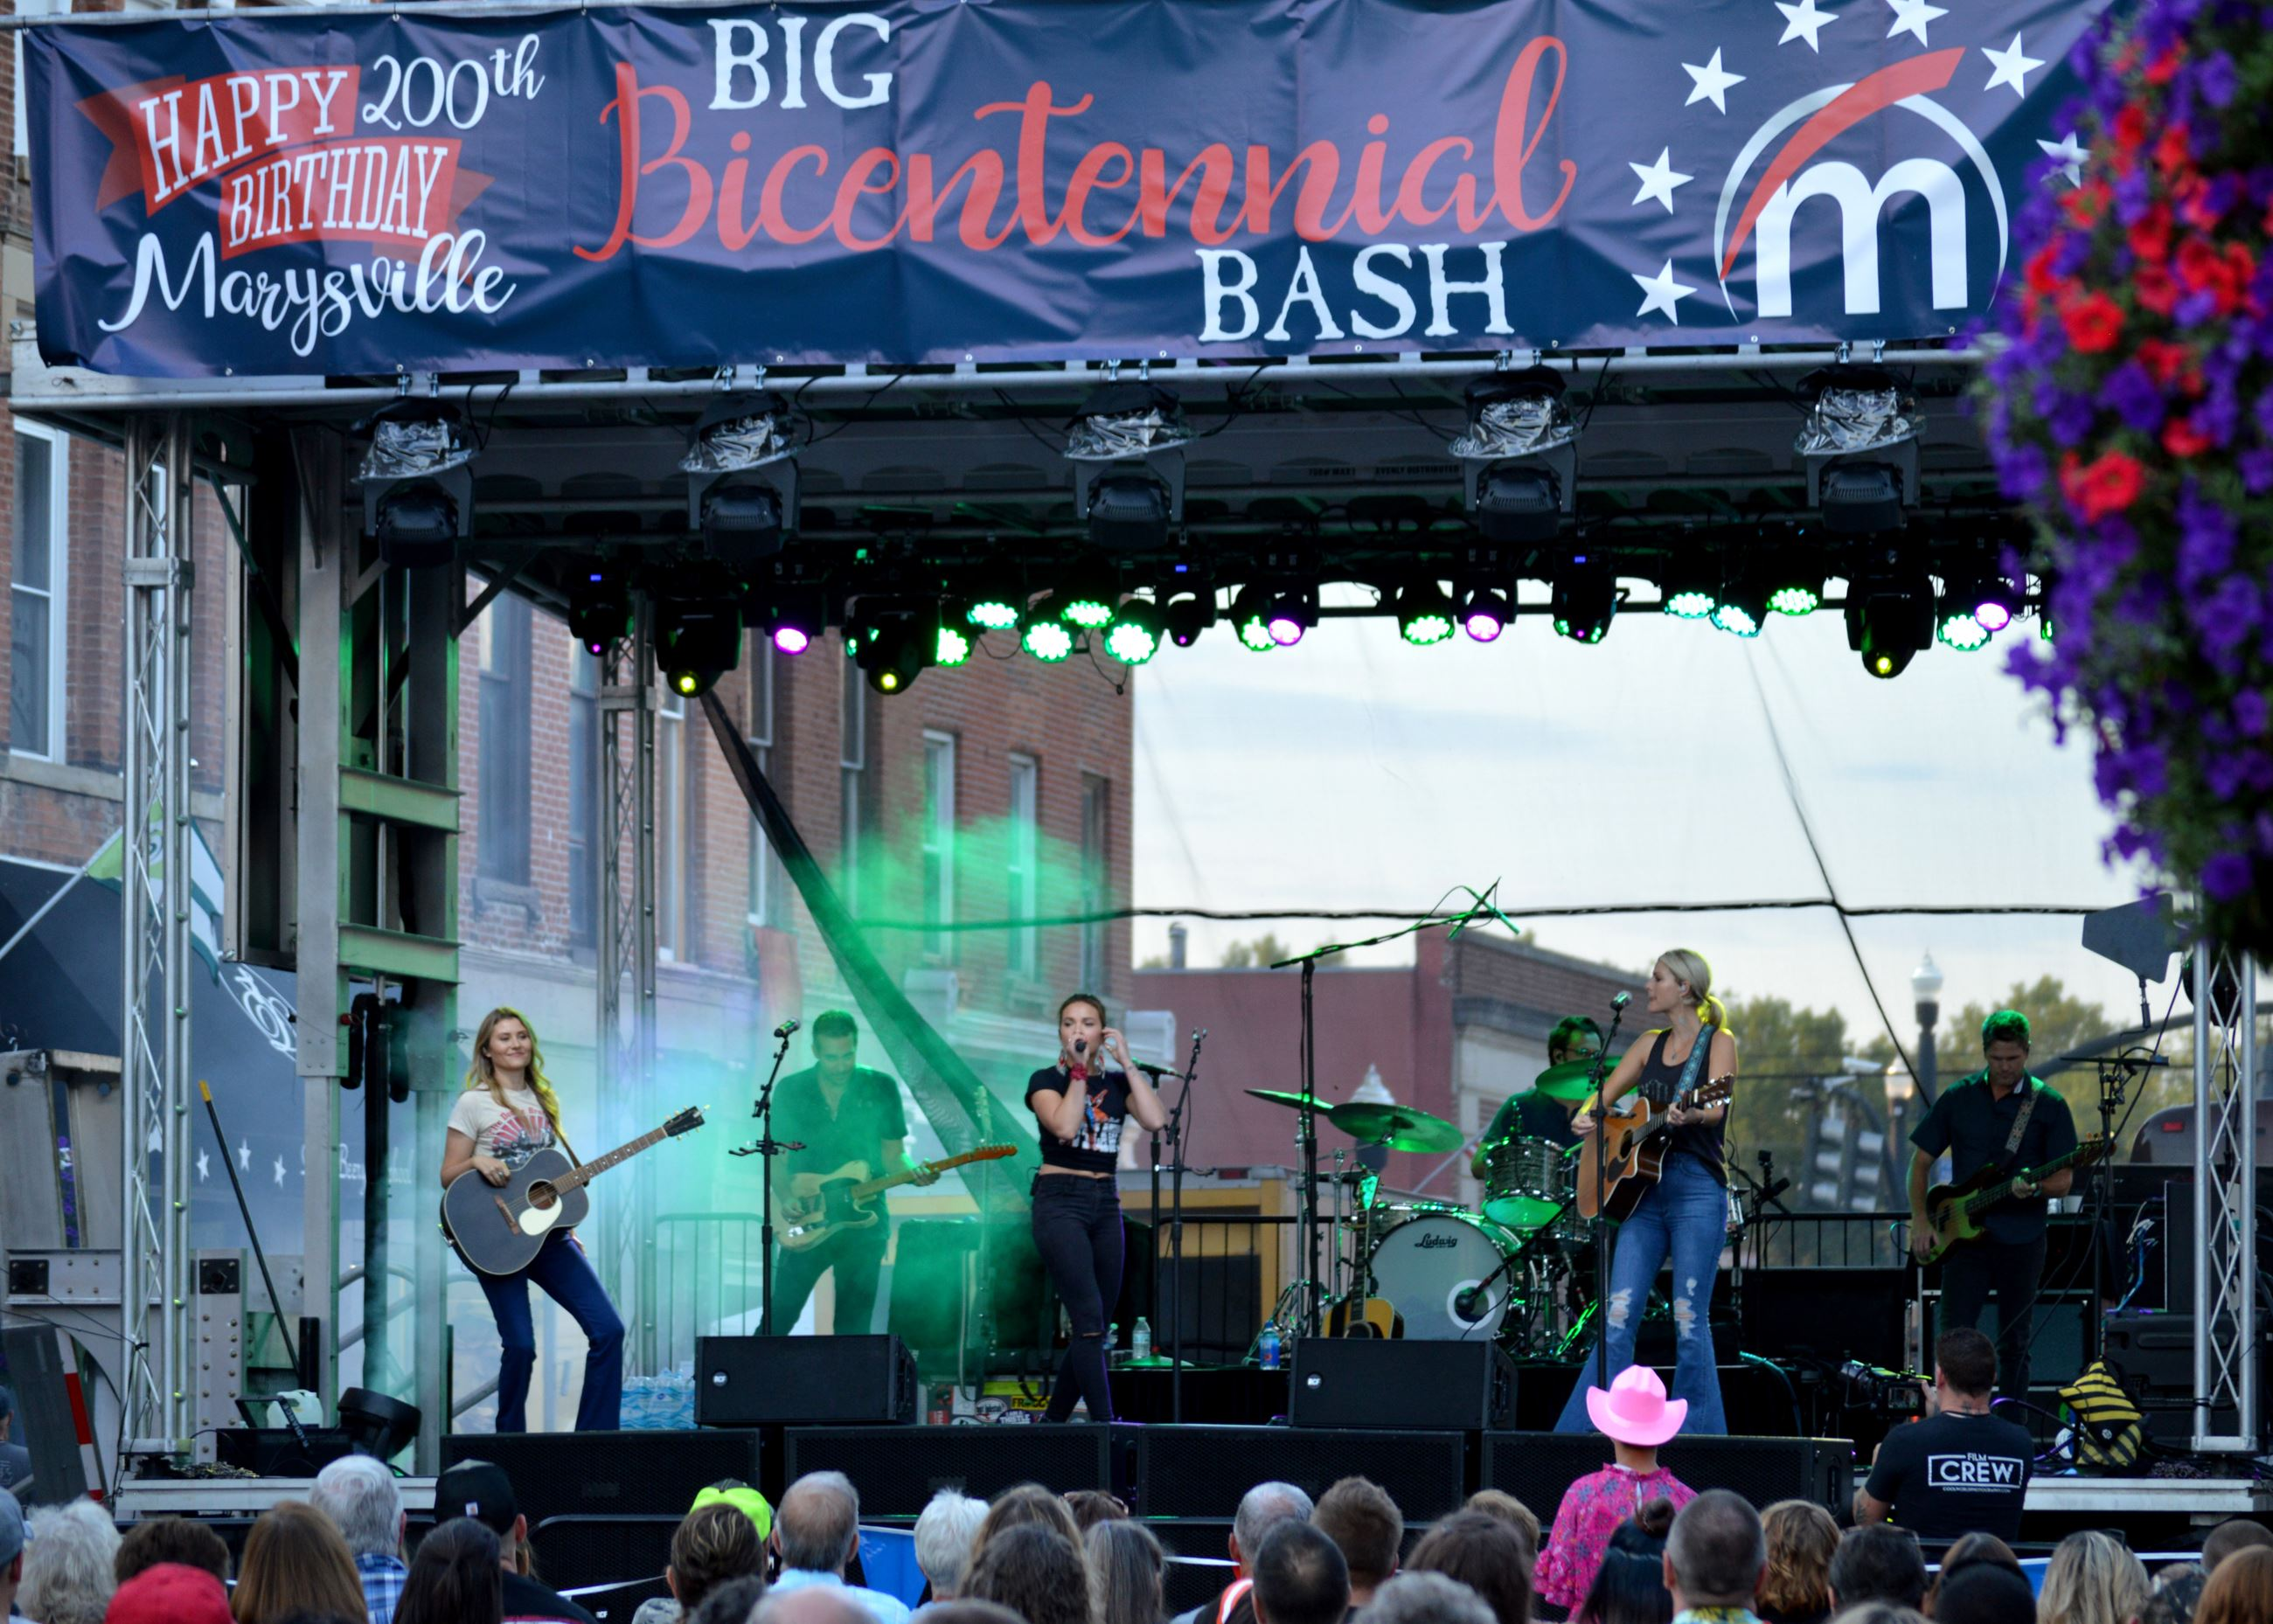 Runaway June musical group performing on the Bicentennial Stage